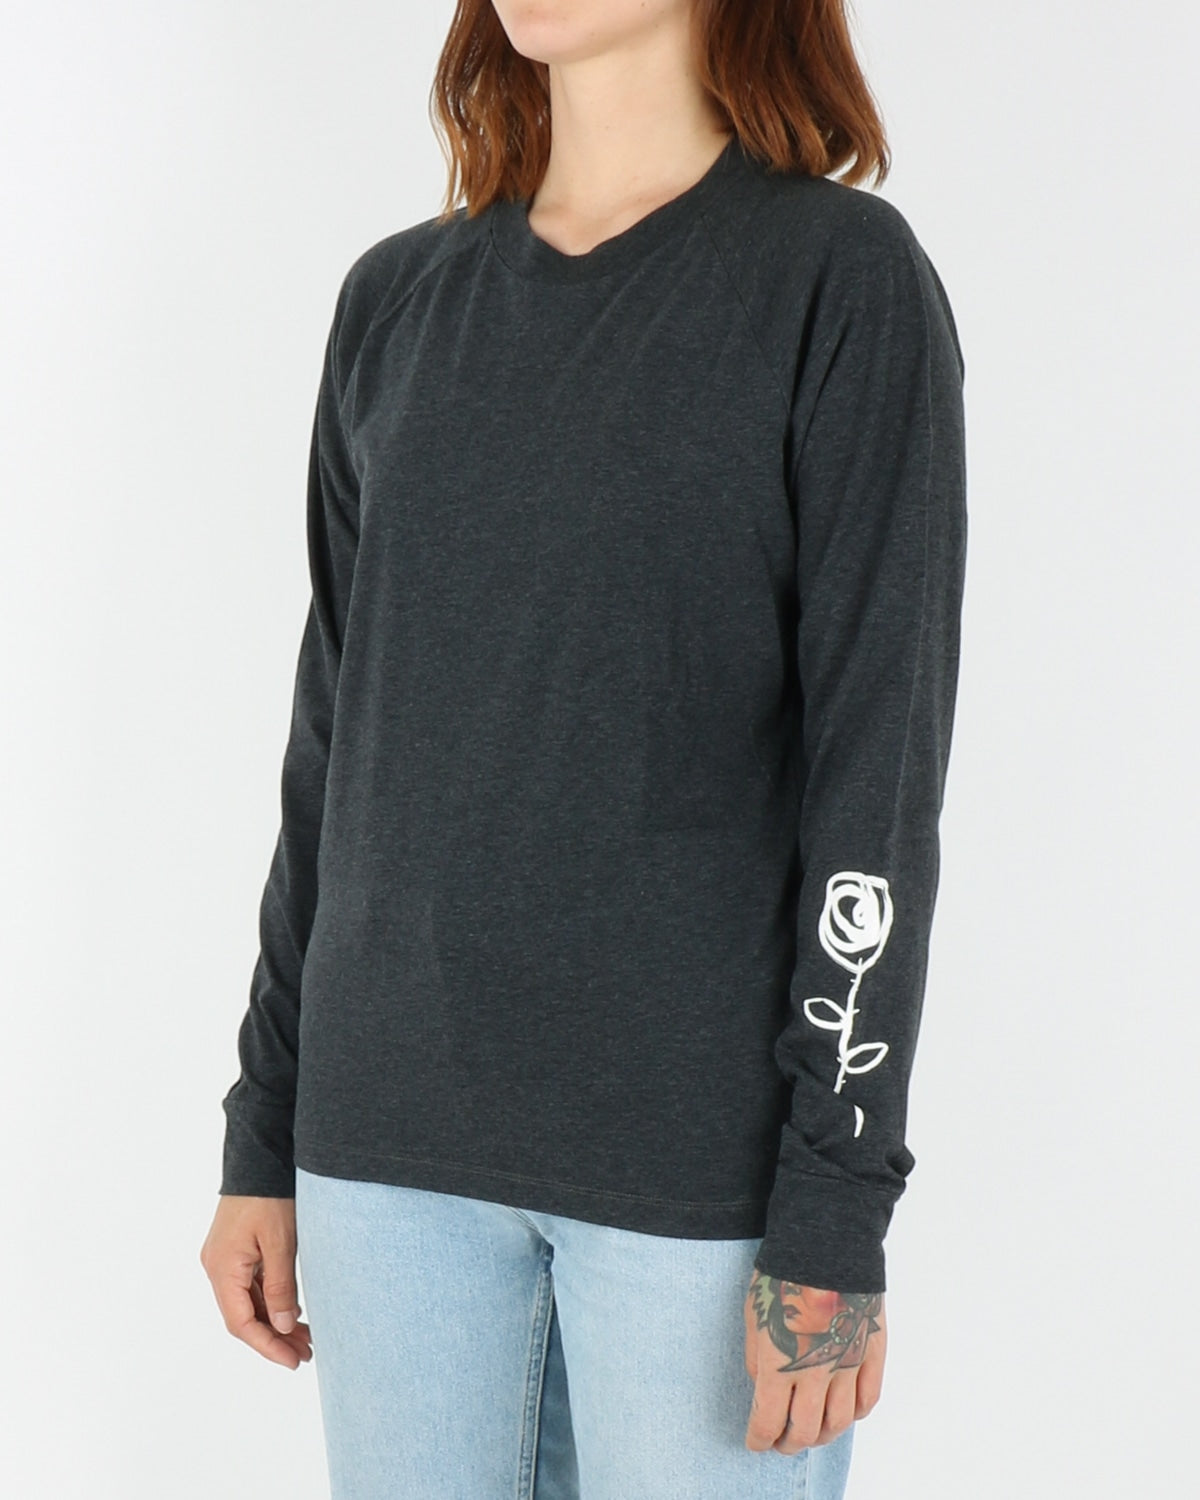 wood wood_halli longsleeve_dark grey_view_2_3